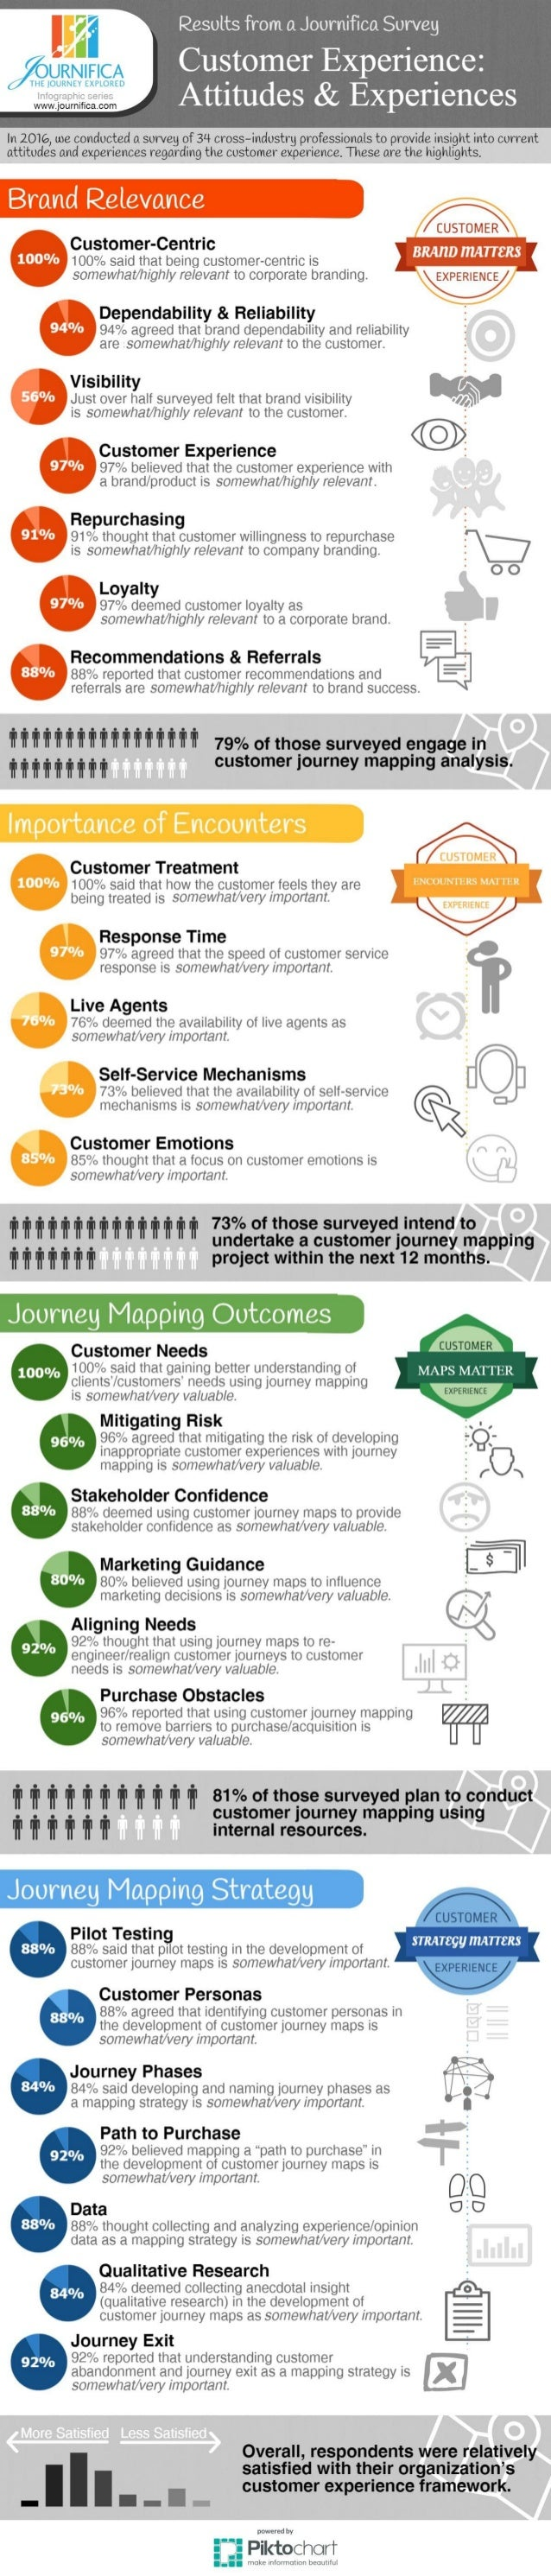 Customer Experience: Attitudes & Experiences